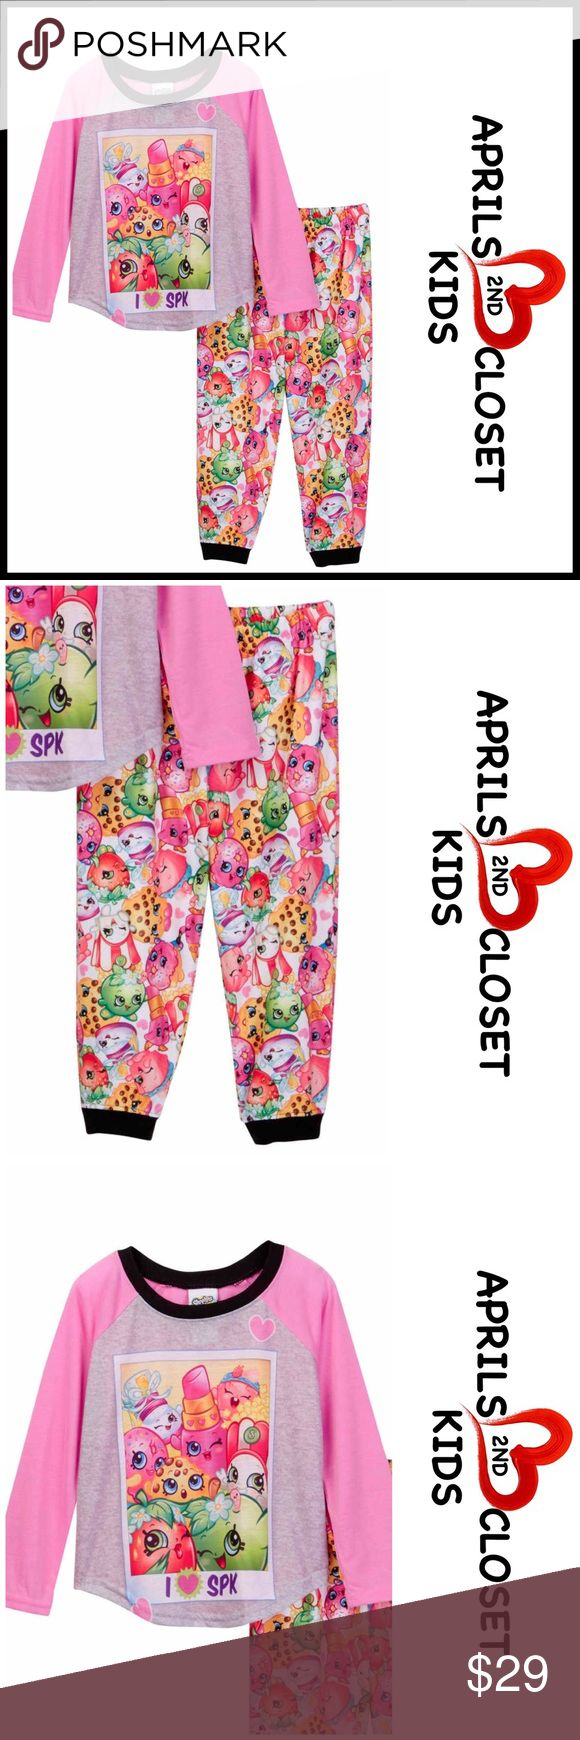 ⭐⭐ SHOPKINS PJS Pajama Set **Additional Details & Photos will be added soon** NEW WITH TAGS RETAIL PRICE:   ITEM:   *   *   *   *   *   *    Material:  Color:  Item#:   No Trades ✅ Offers Considered*✅ *Please use the blue 'offer' button to submit an offer. Shopkins Pajamas Pajama Sets